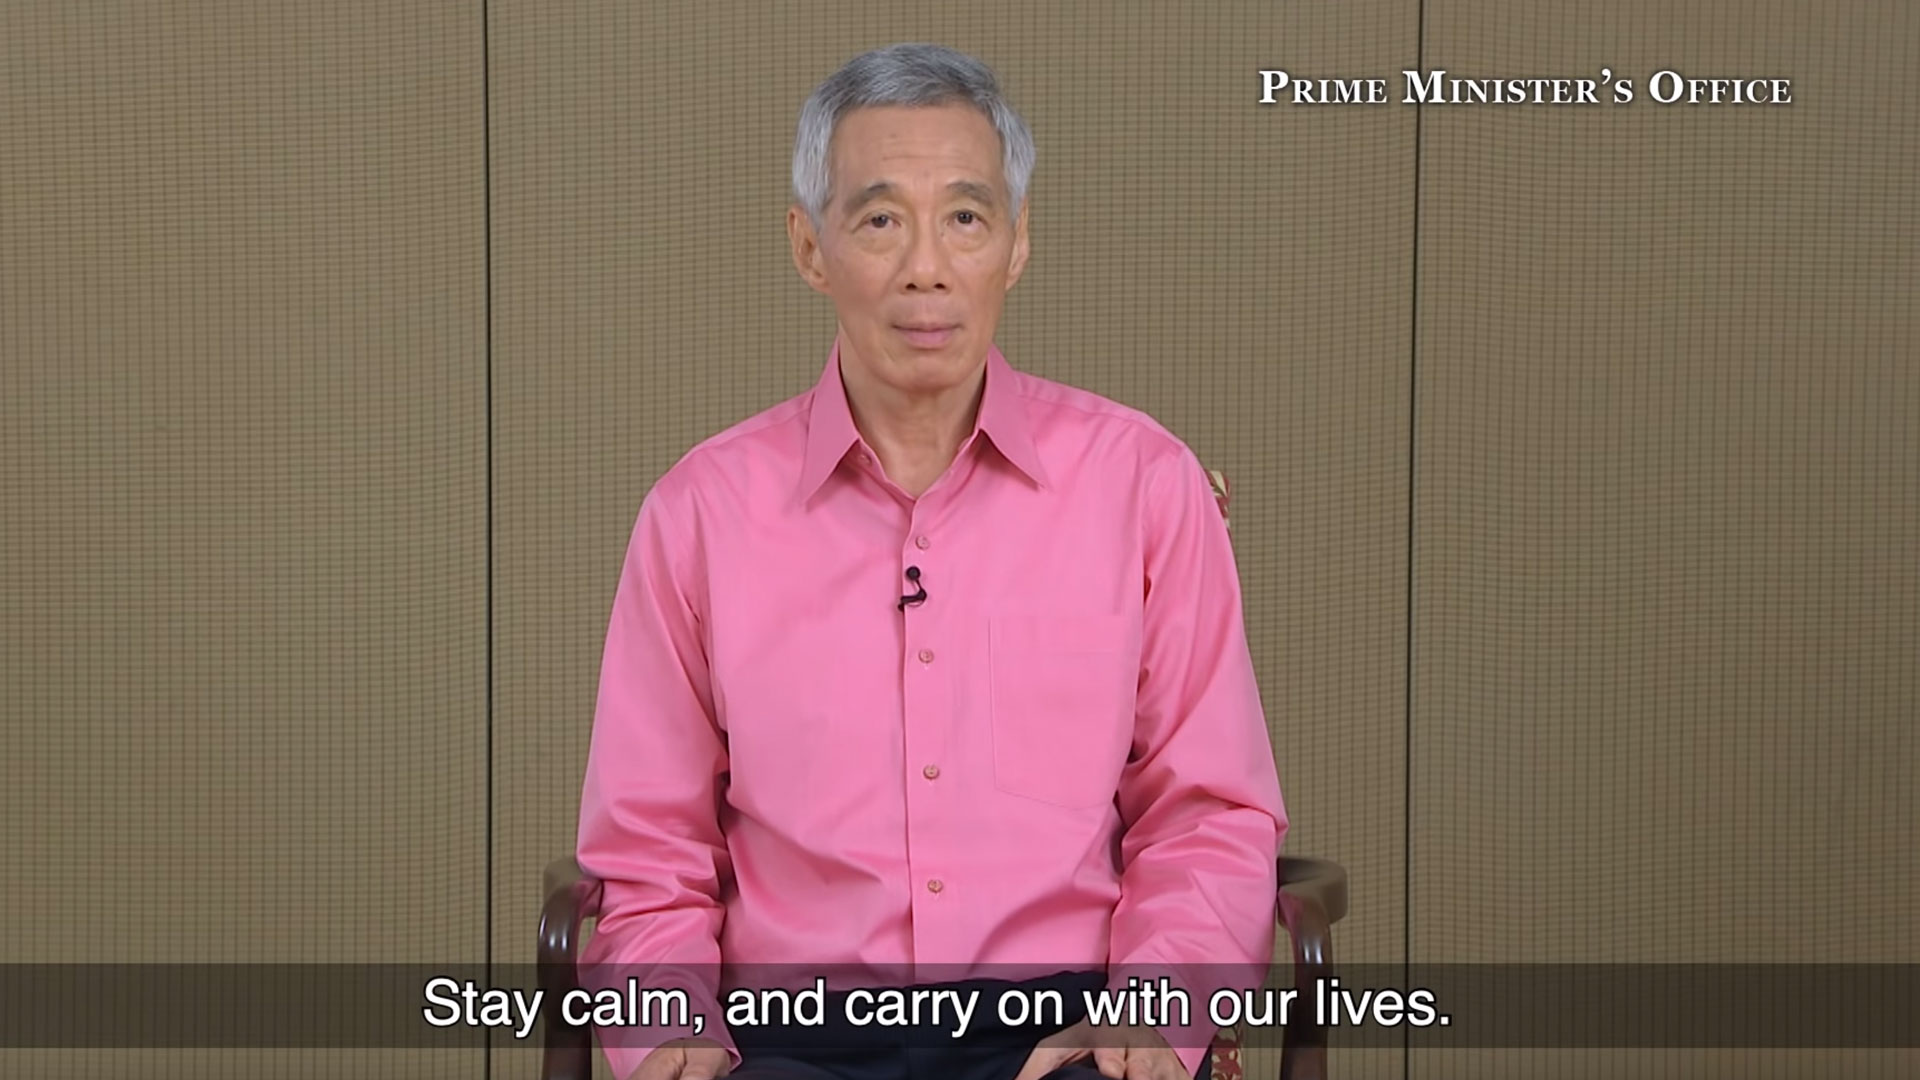 PM Lee Hsien Loong on the Novel Coronavirus situation in Singapore